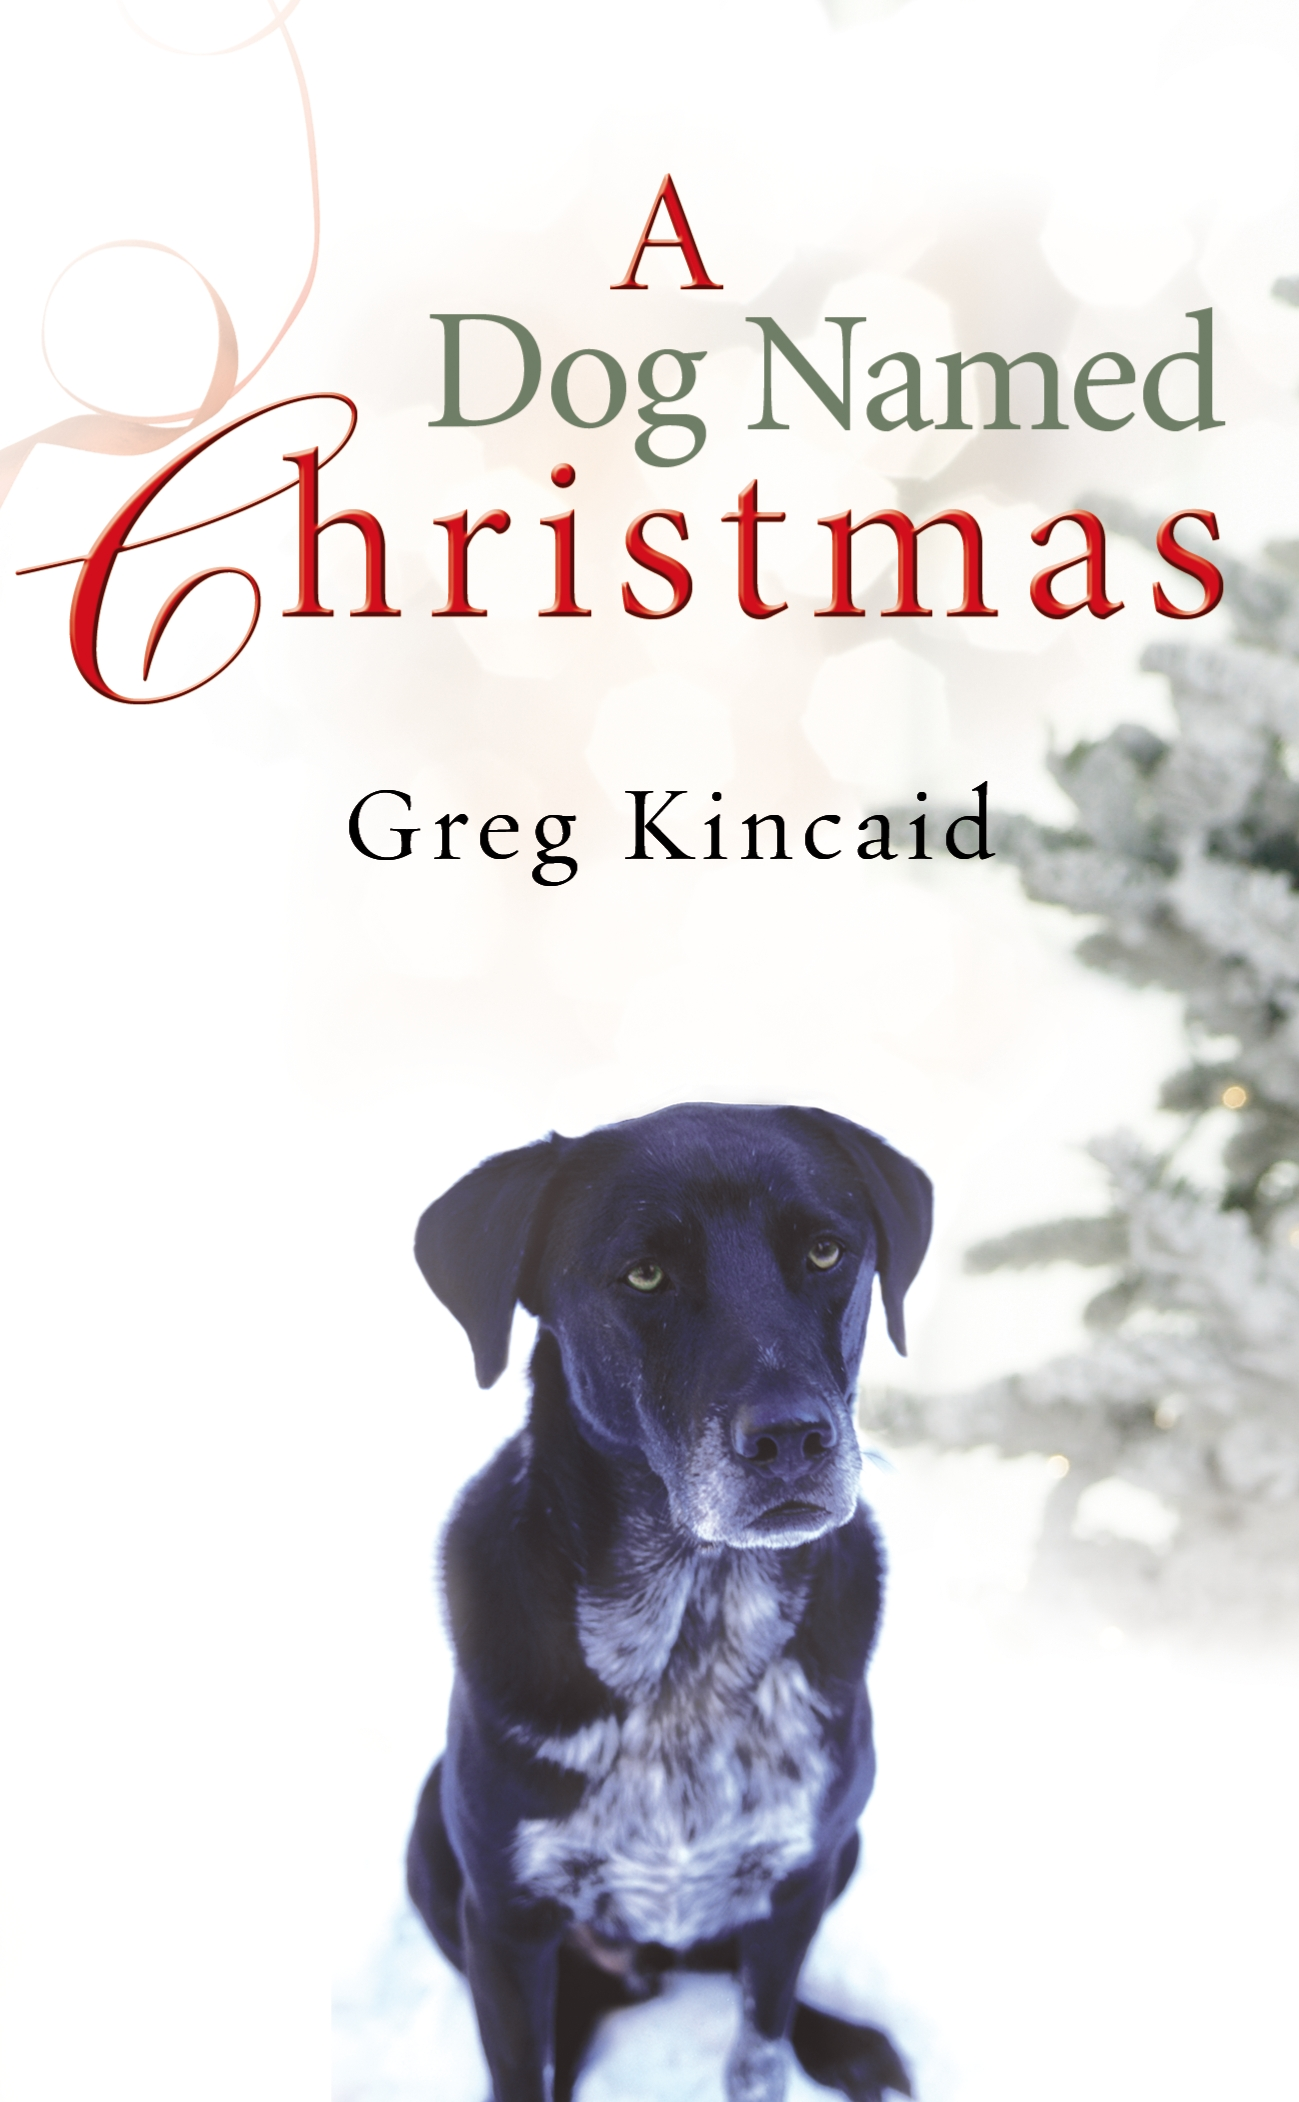 A Dog Named Christmas.A Dog Named Christmas By Greg Kincaid Penguin Books New